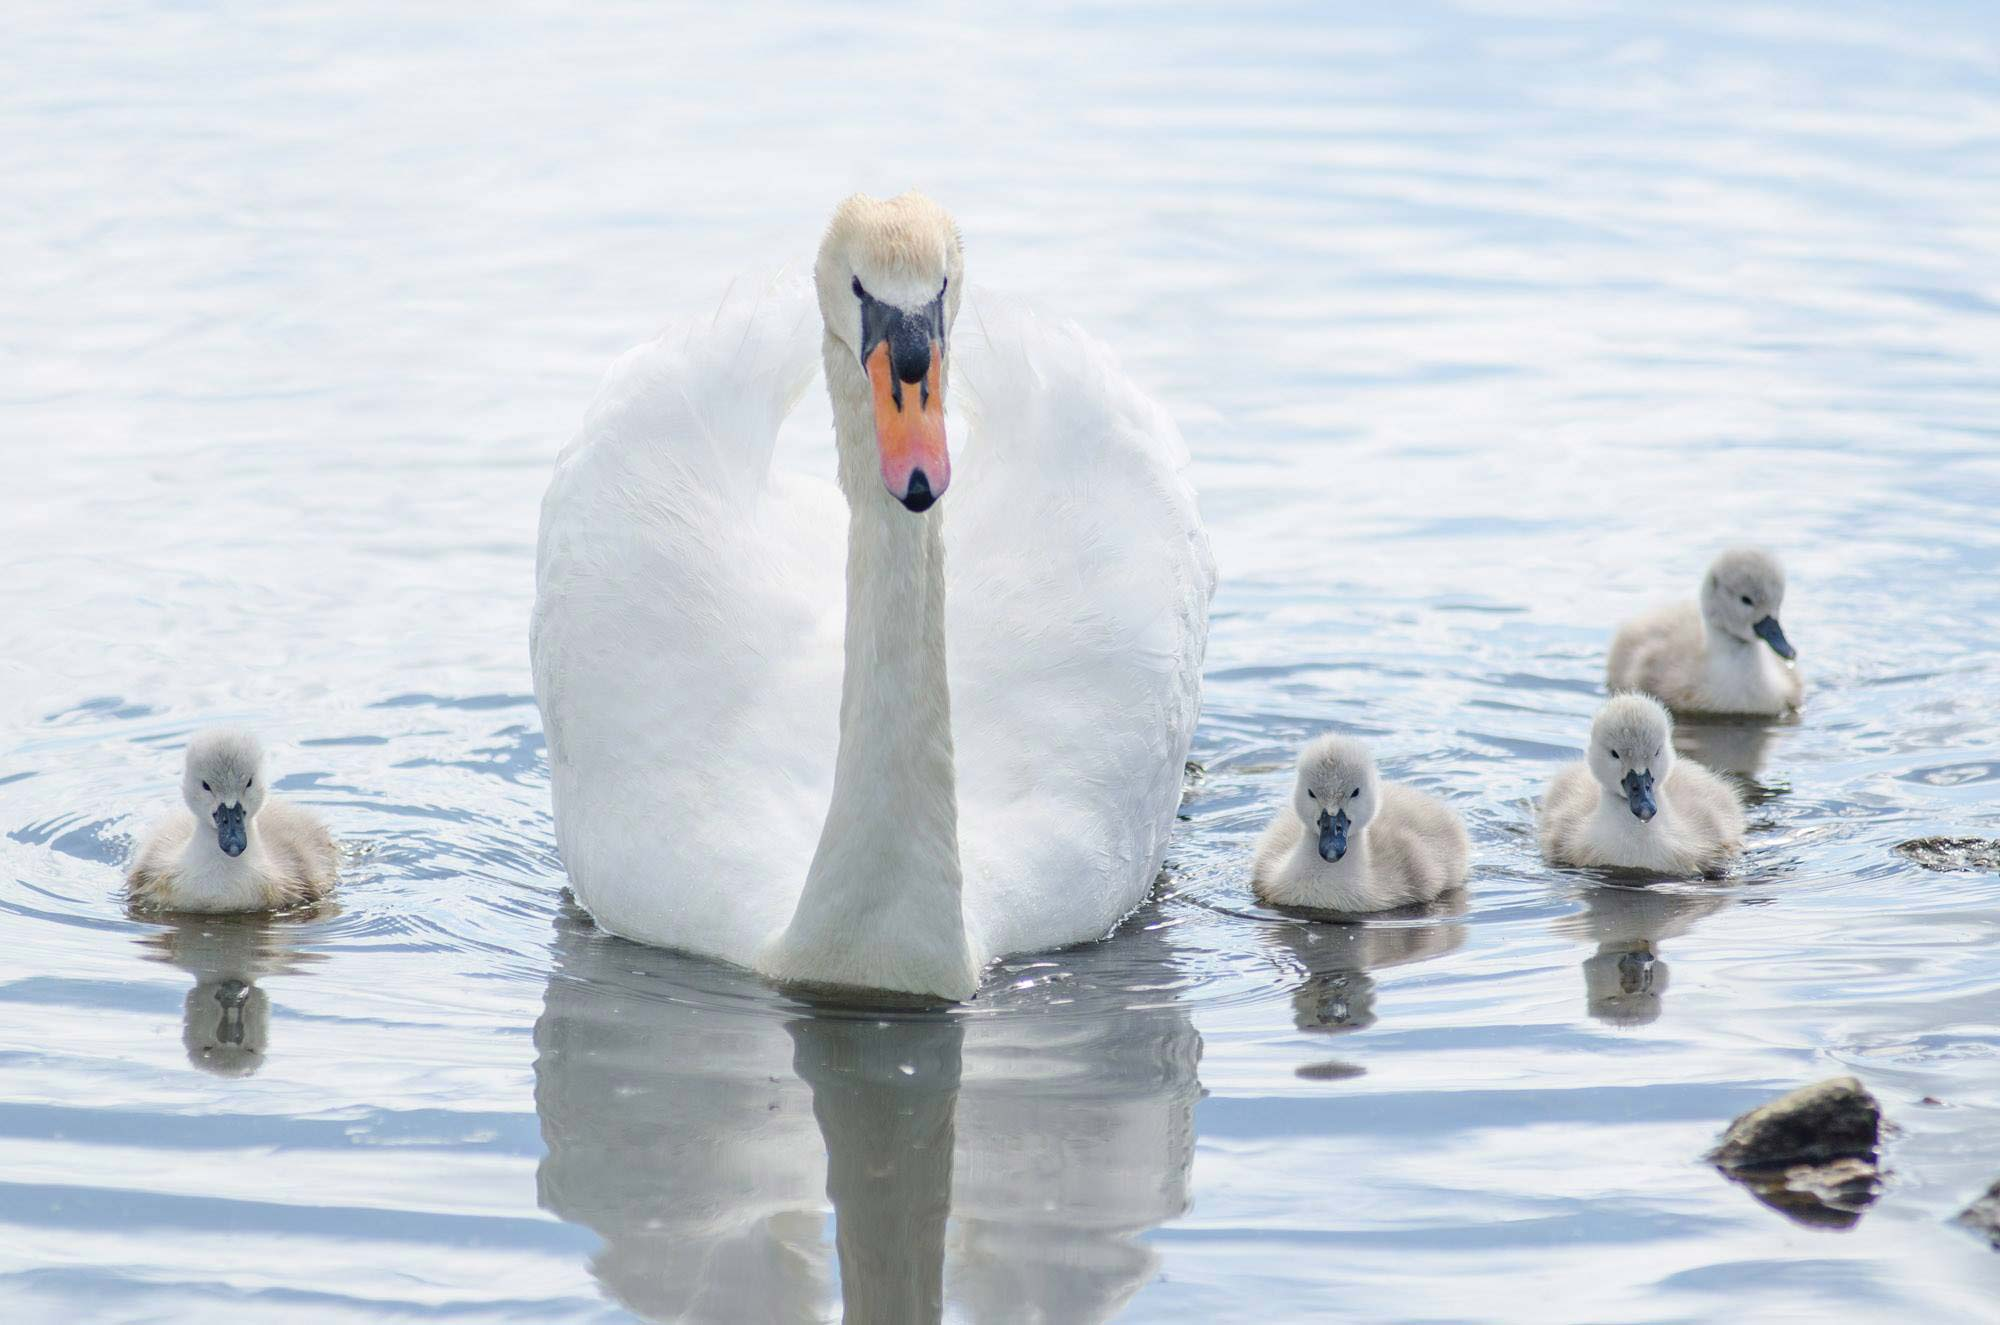 Family of swans on the water at Abbotsbury Swannery